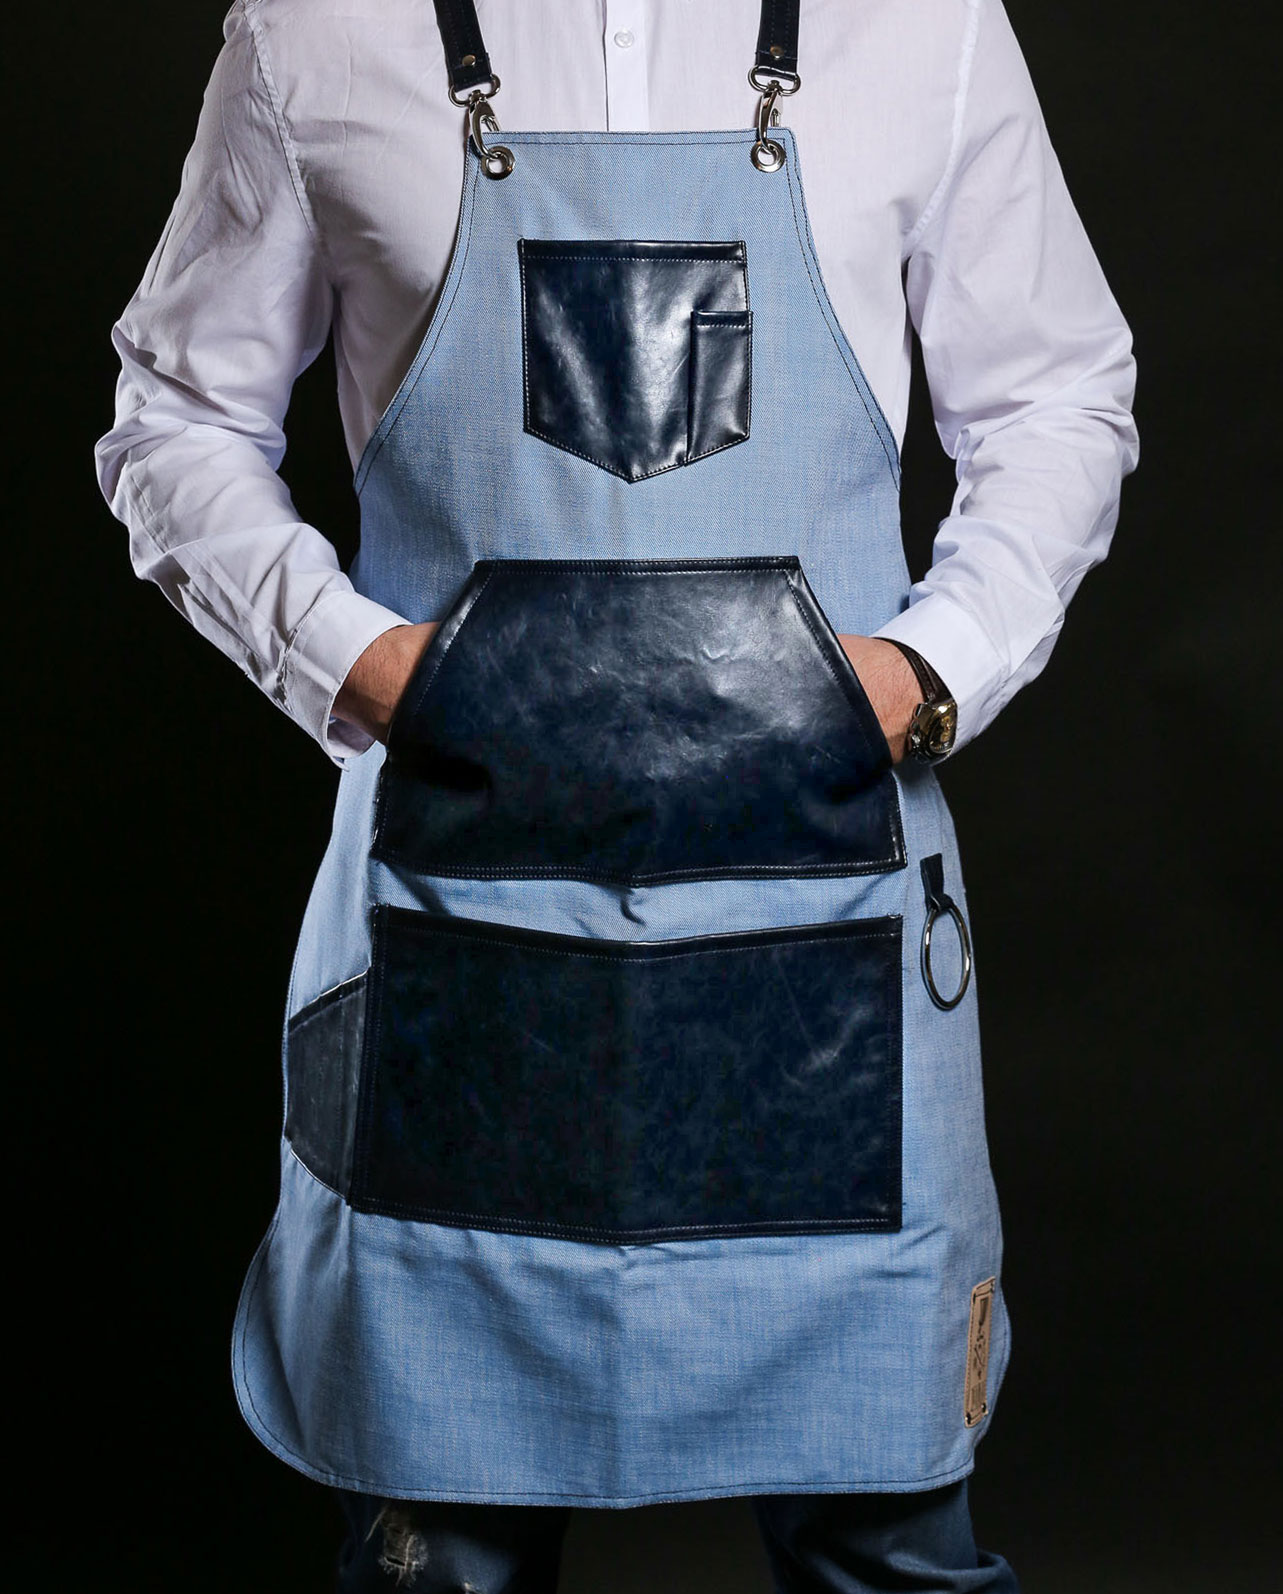 FancyGents Apron Denver